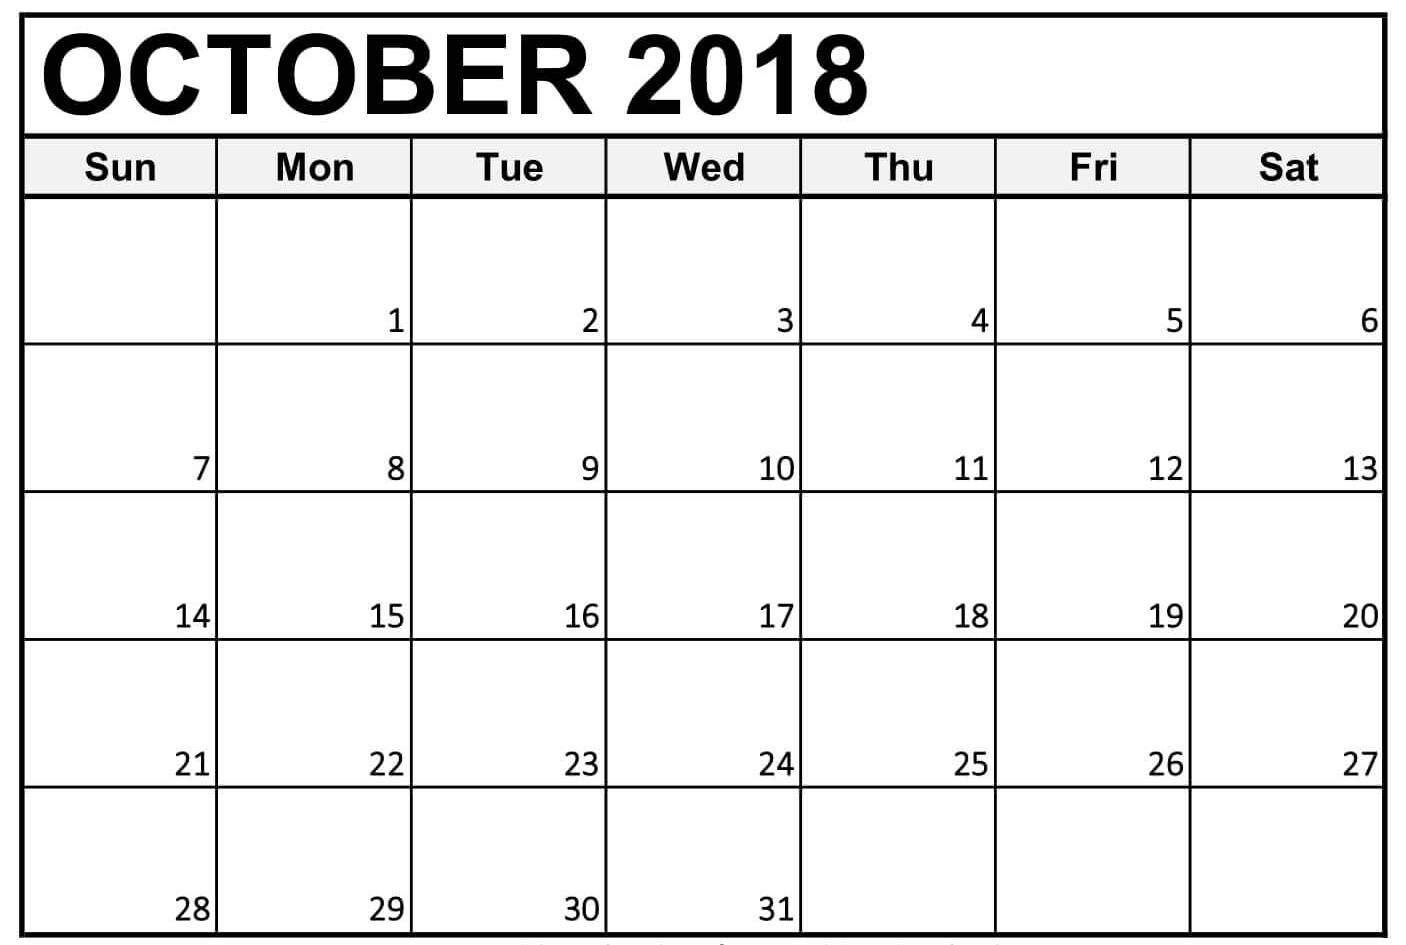 calendar october 2018 printable download calendar printable with Calendar October 2018 Printables erdferdf